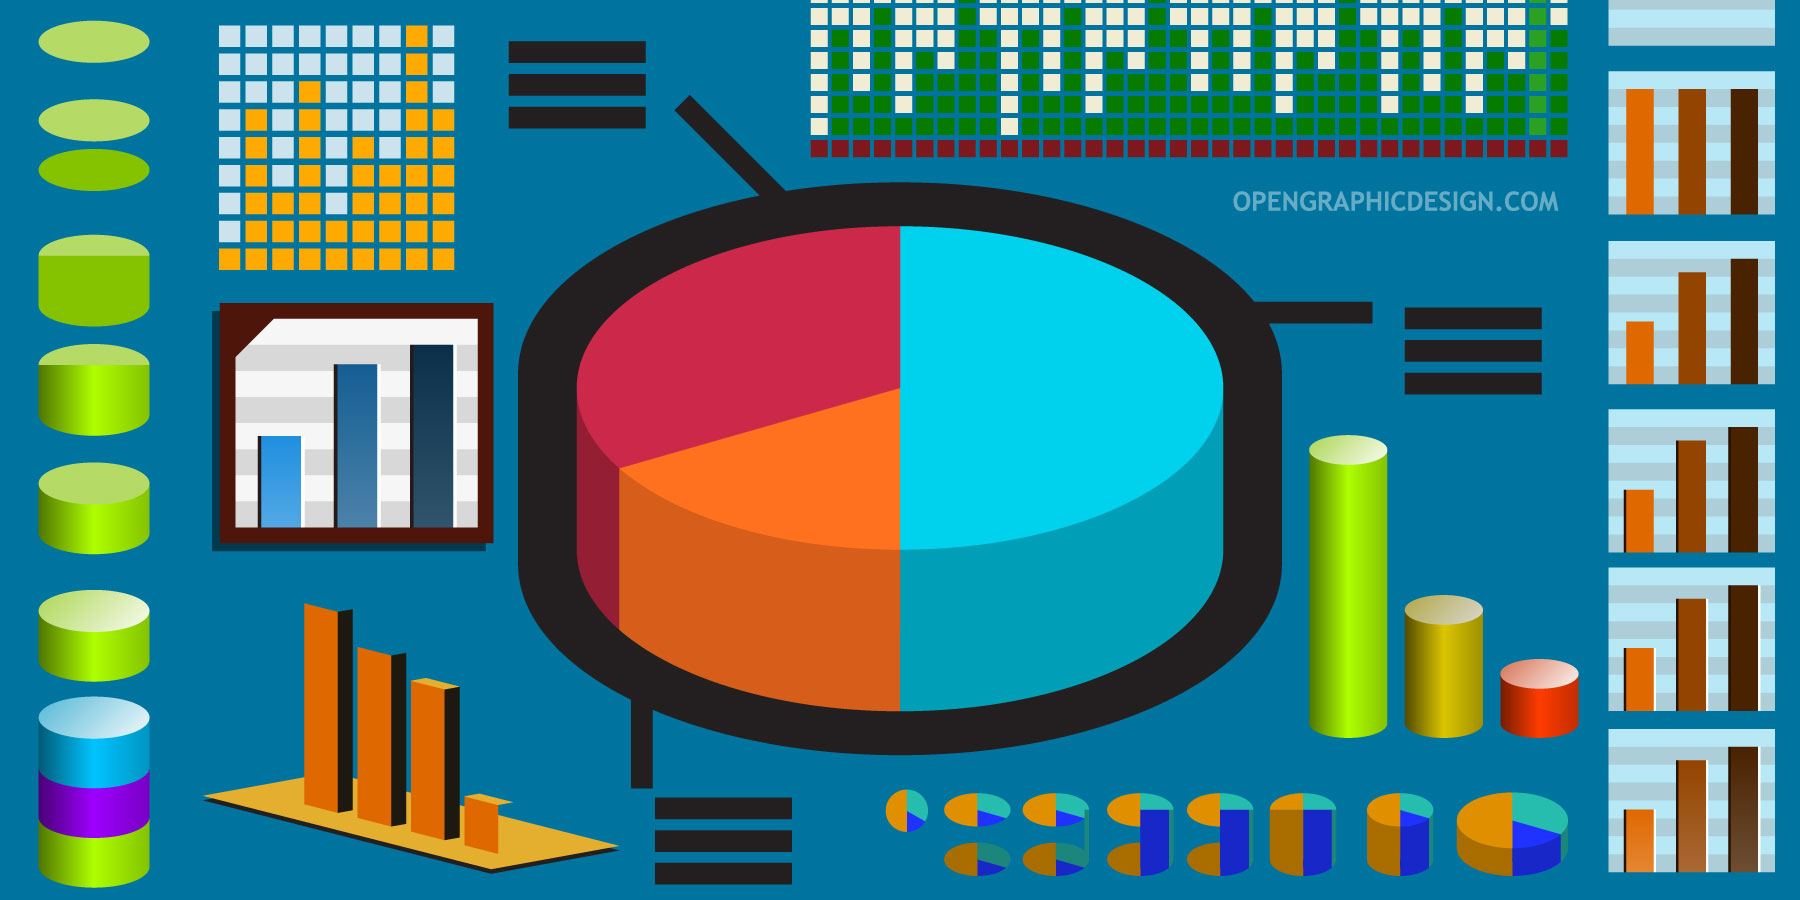 Pie charts data graphs and bar graphs in vector format free how to make vector charts and graphs hires nvjuhfo Gallery